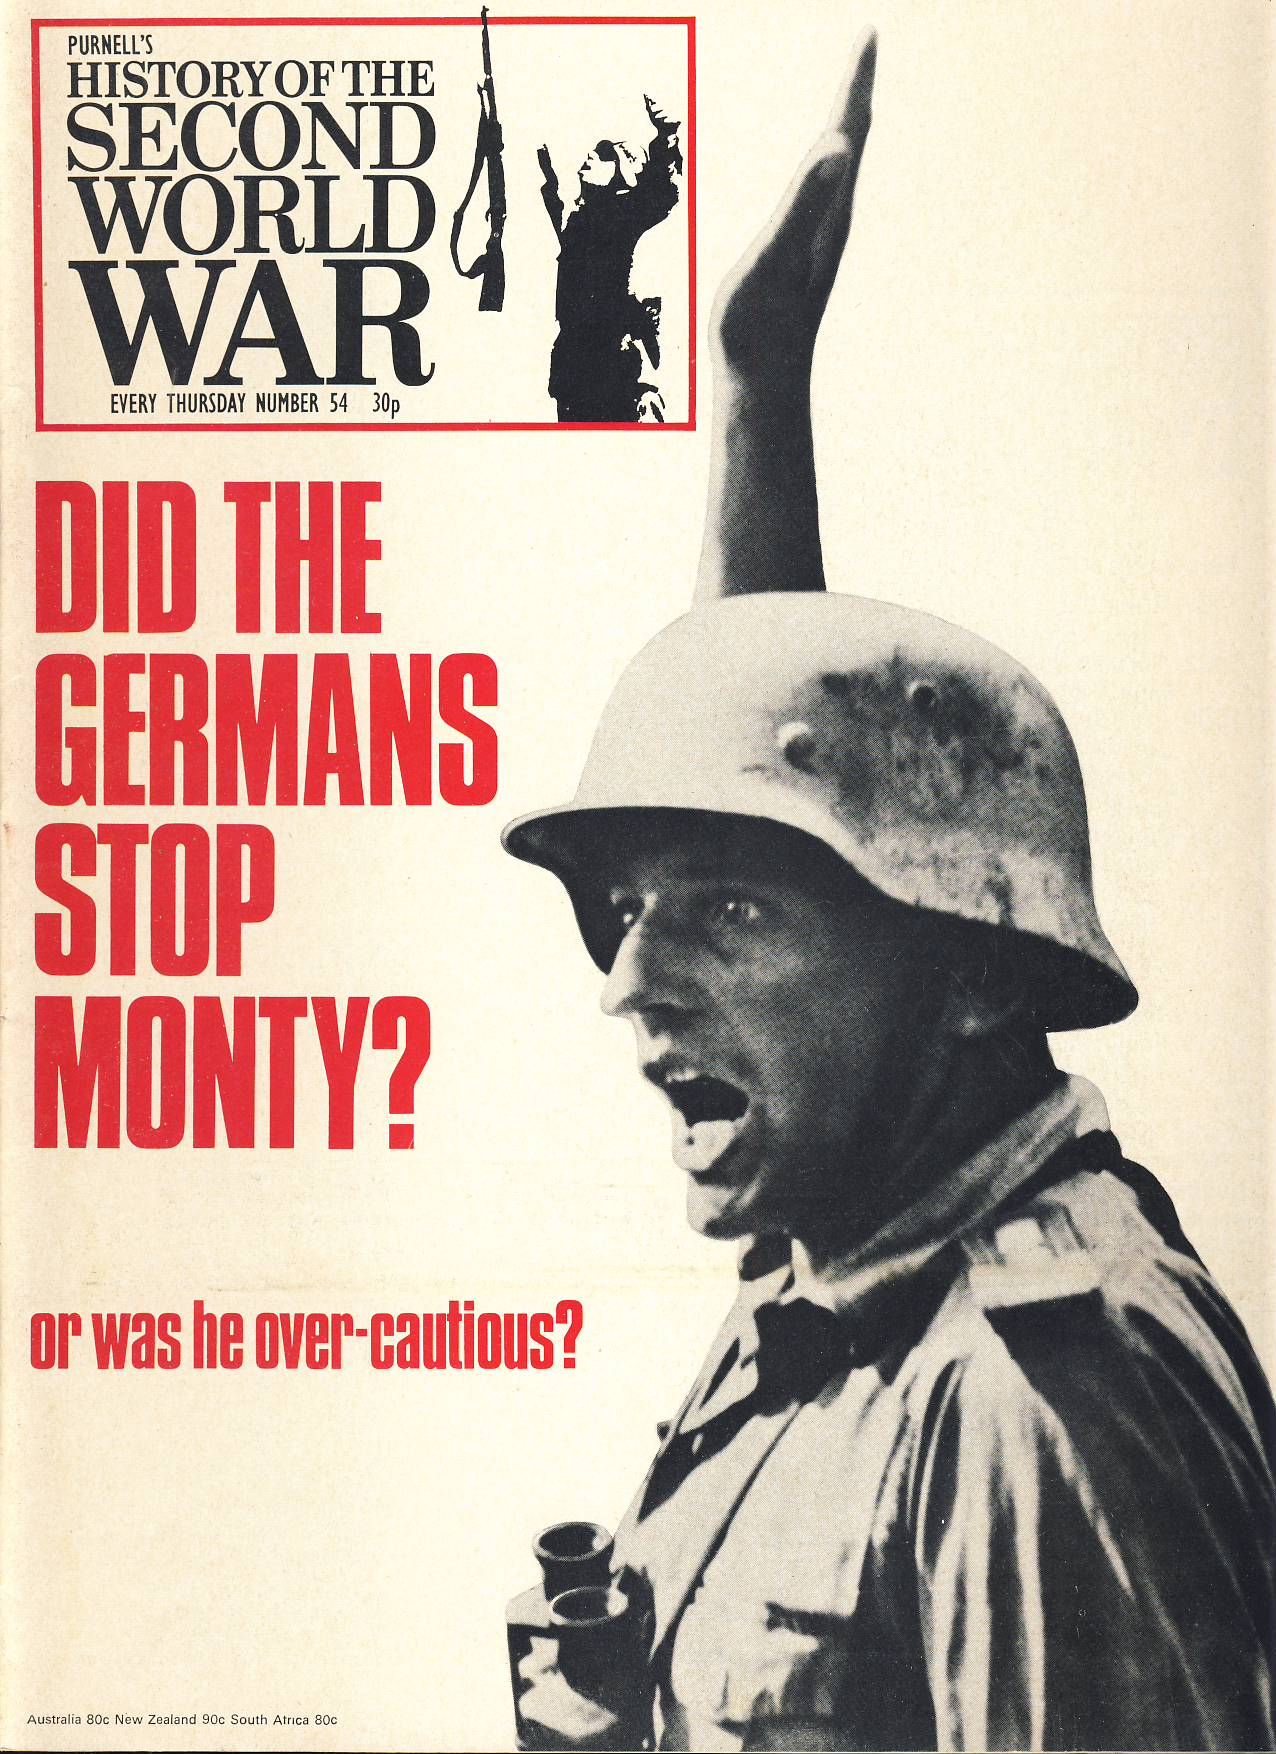 History of the Second World War Magazine #54 DID THE GERMANS STOP MONTY? Cassino